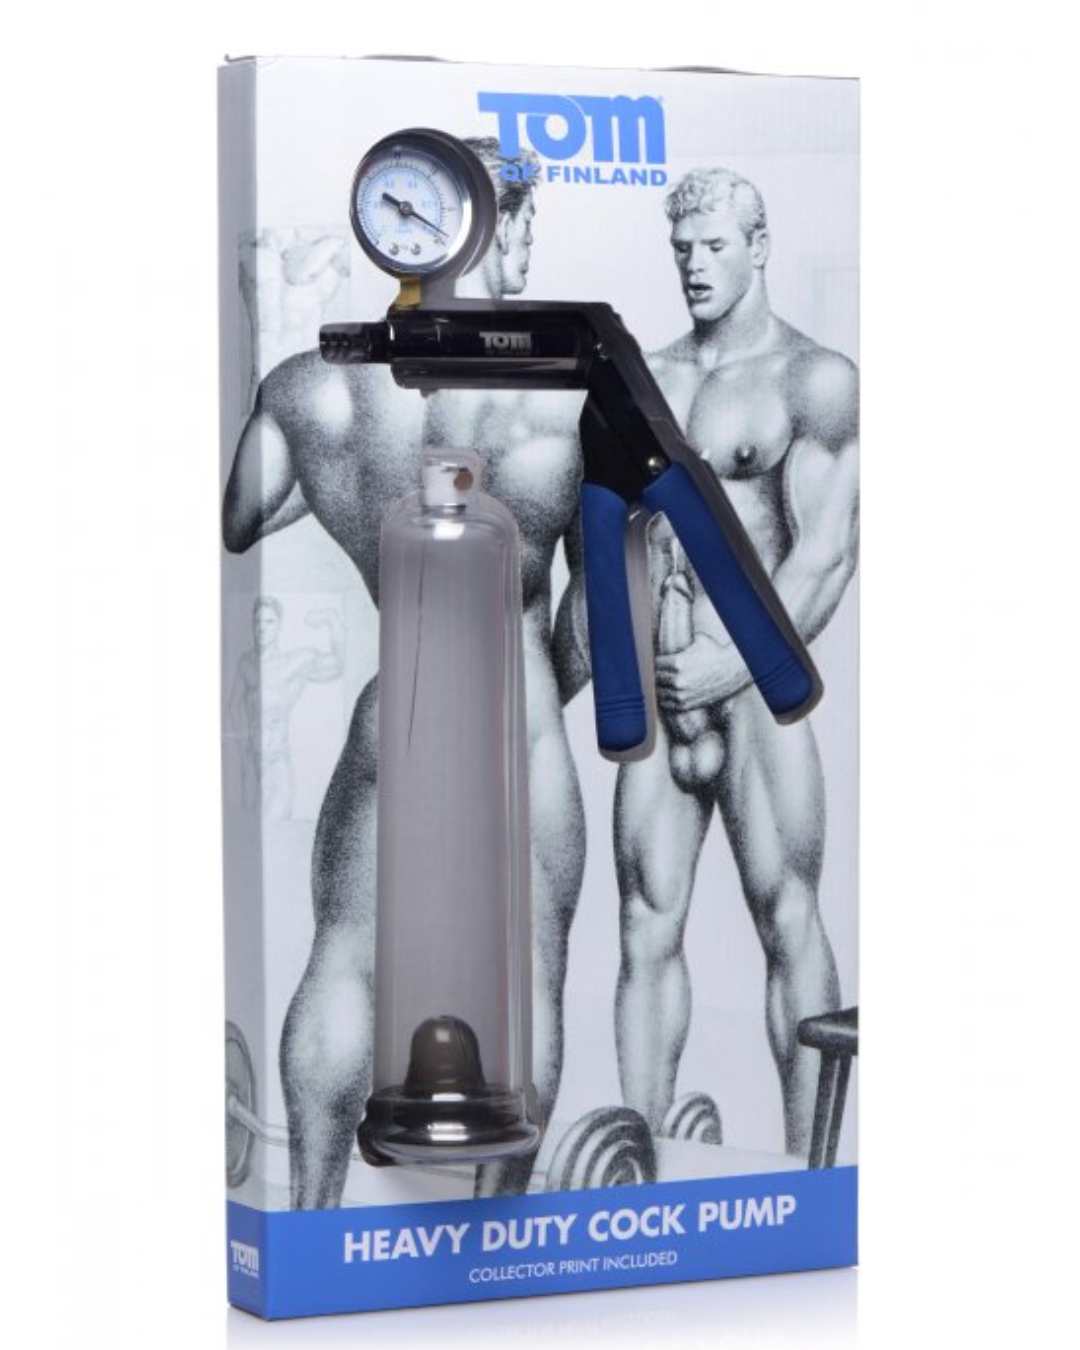 Tom Of Finland Heavy Duty Cock Pump package